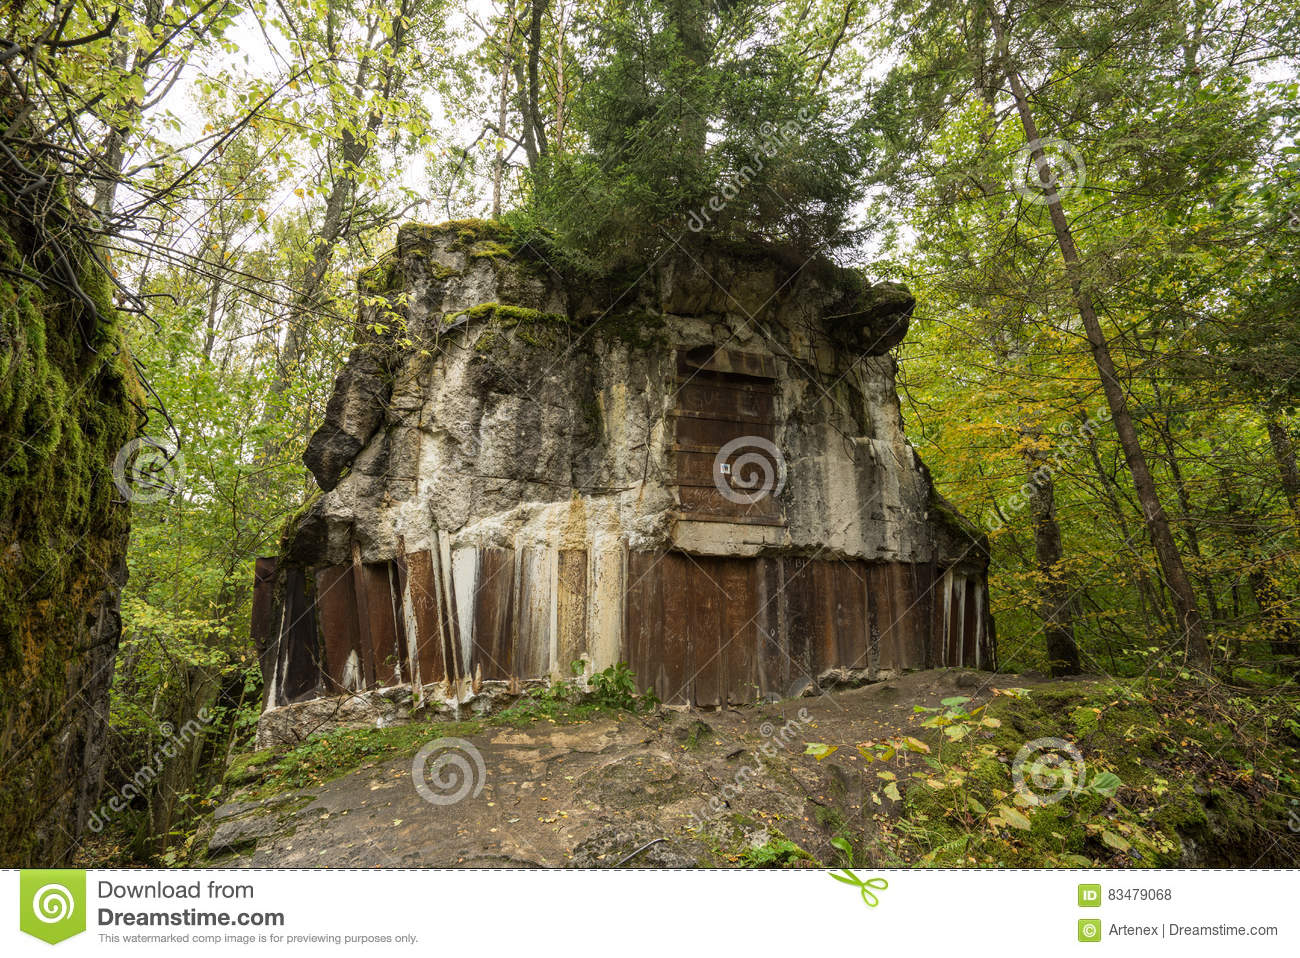 Wolf`s Lair, Adolf Hitler`s Bunker, Poland. First Eastern Front military headquarters, World War II. Complex blown up, abandoned